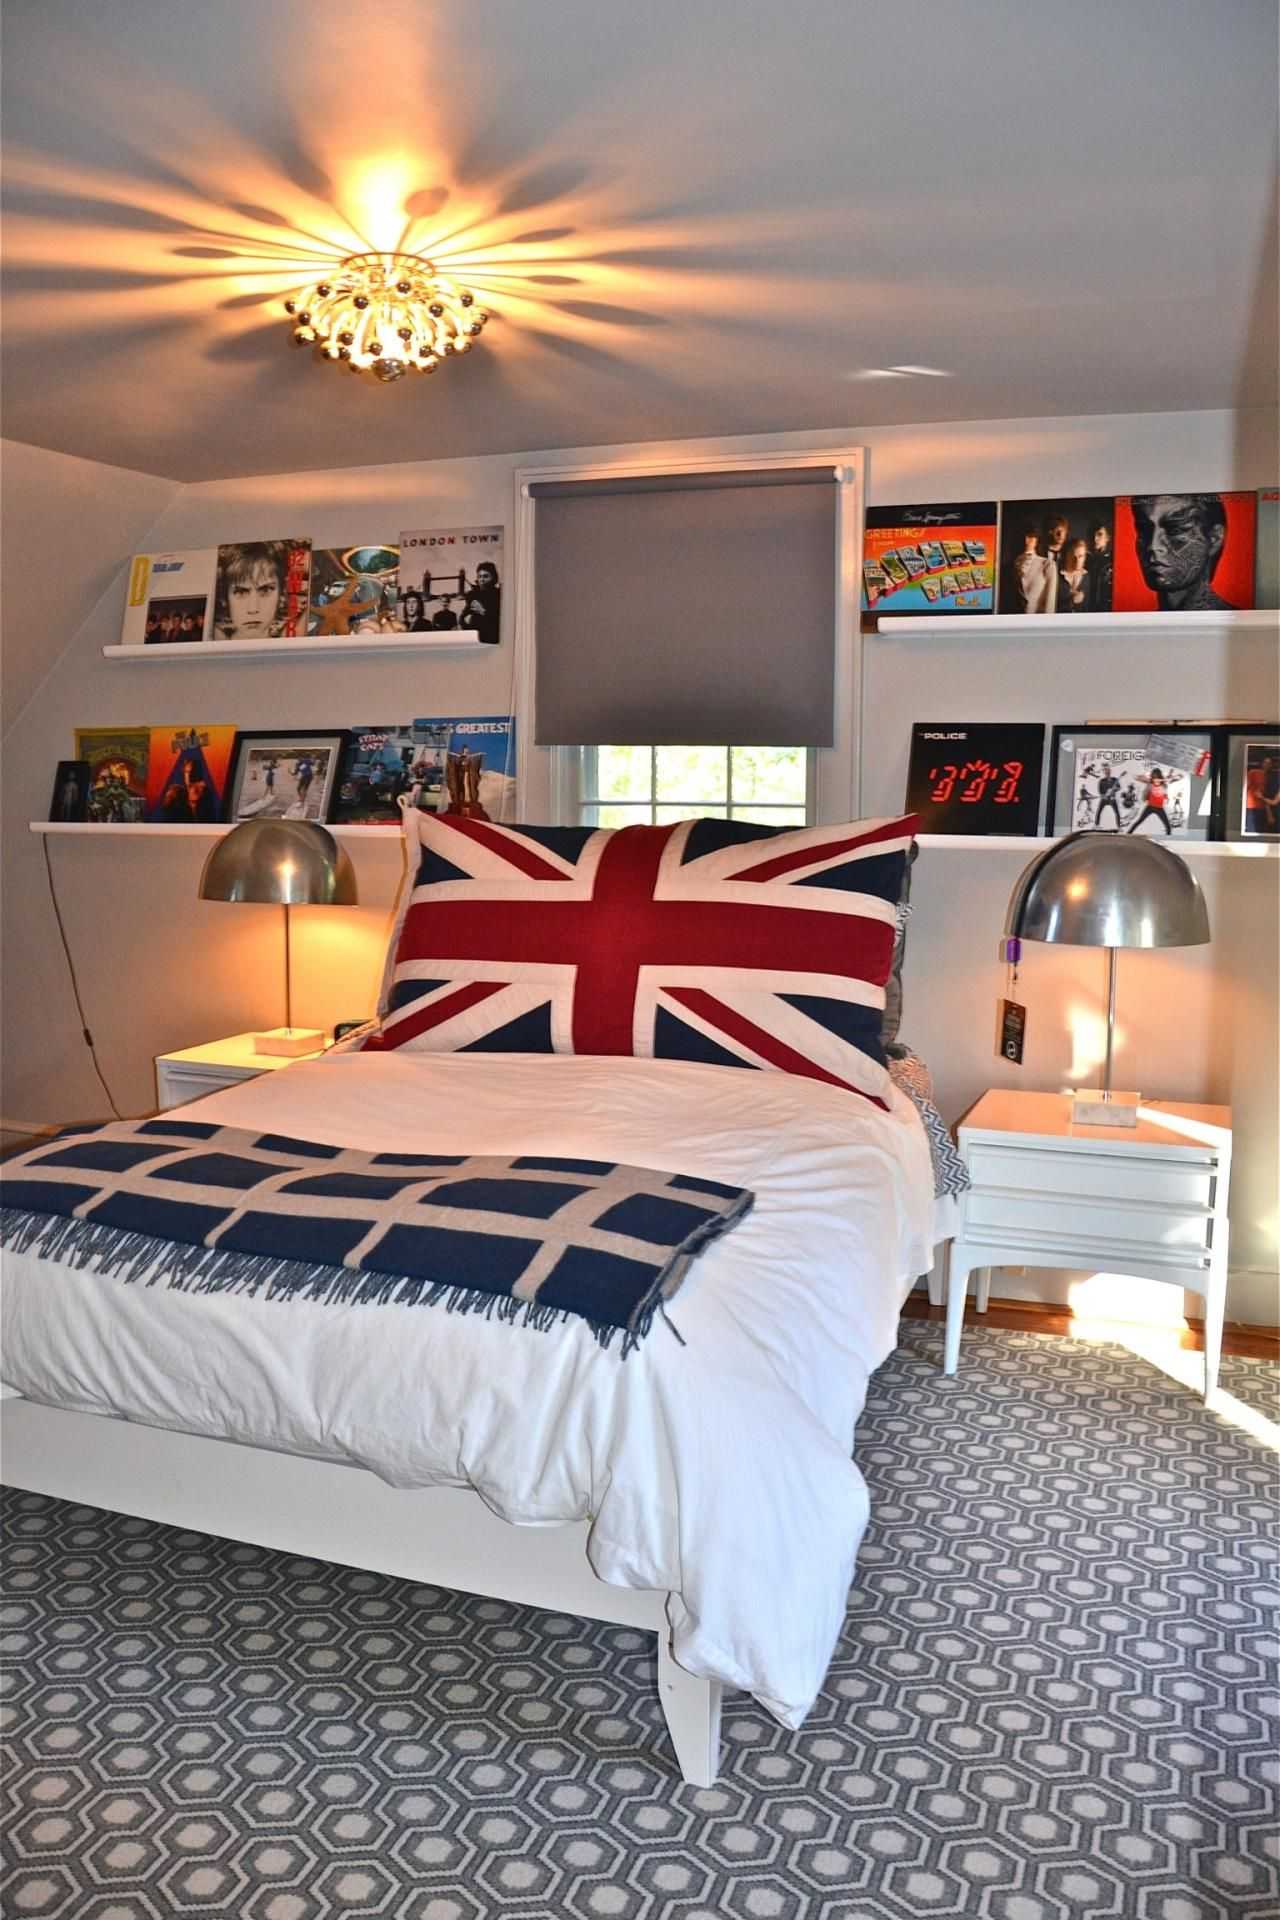 can you do interior design without a degree union jack bedroom design decoration Pretty Kitchen Organization u0026 Storage Ideas | HGTVu0027s Decorating u0026 Design  Blog | HGTV